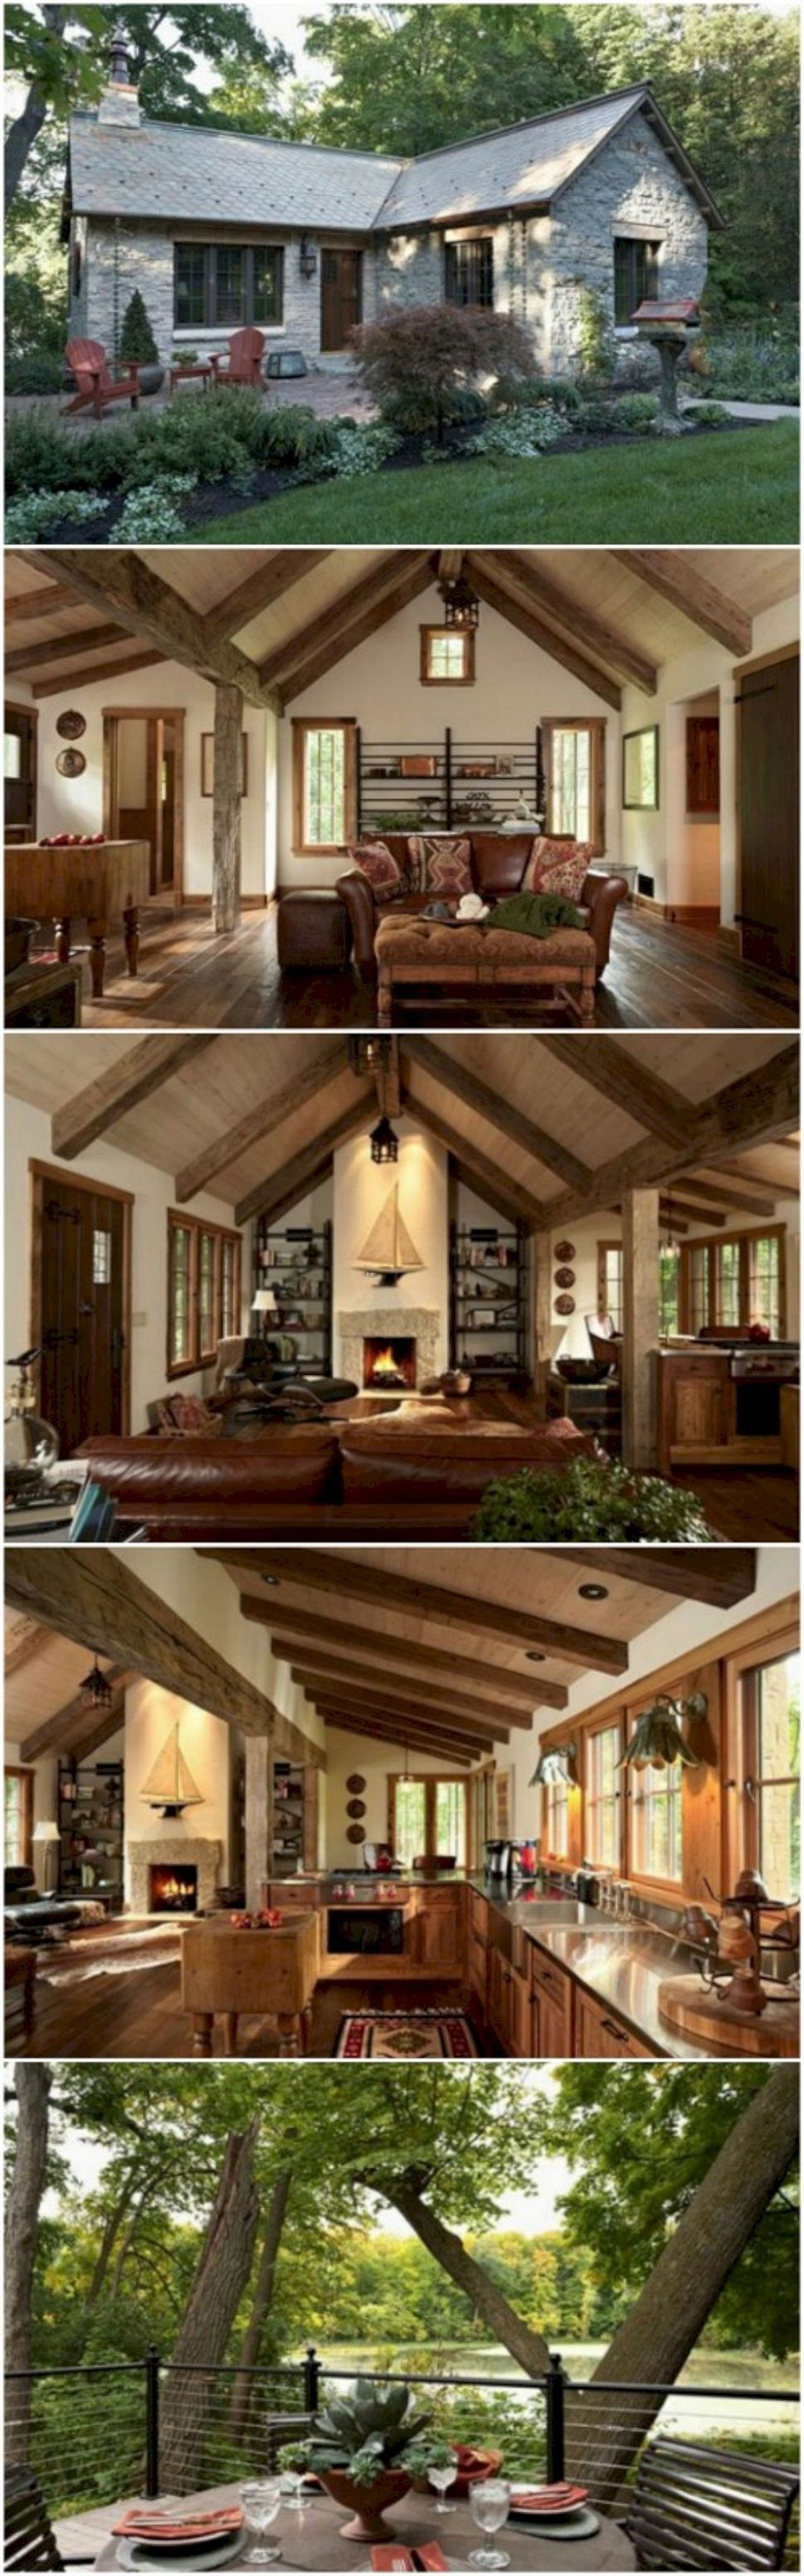 marvelous pictures of small homes. Marvelous and impressive tiny houses design that maximize style  function no 52 70 Tiny Houses Design That Maximize Style Function